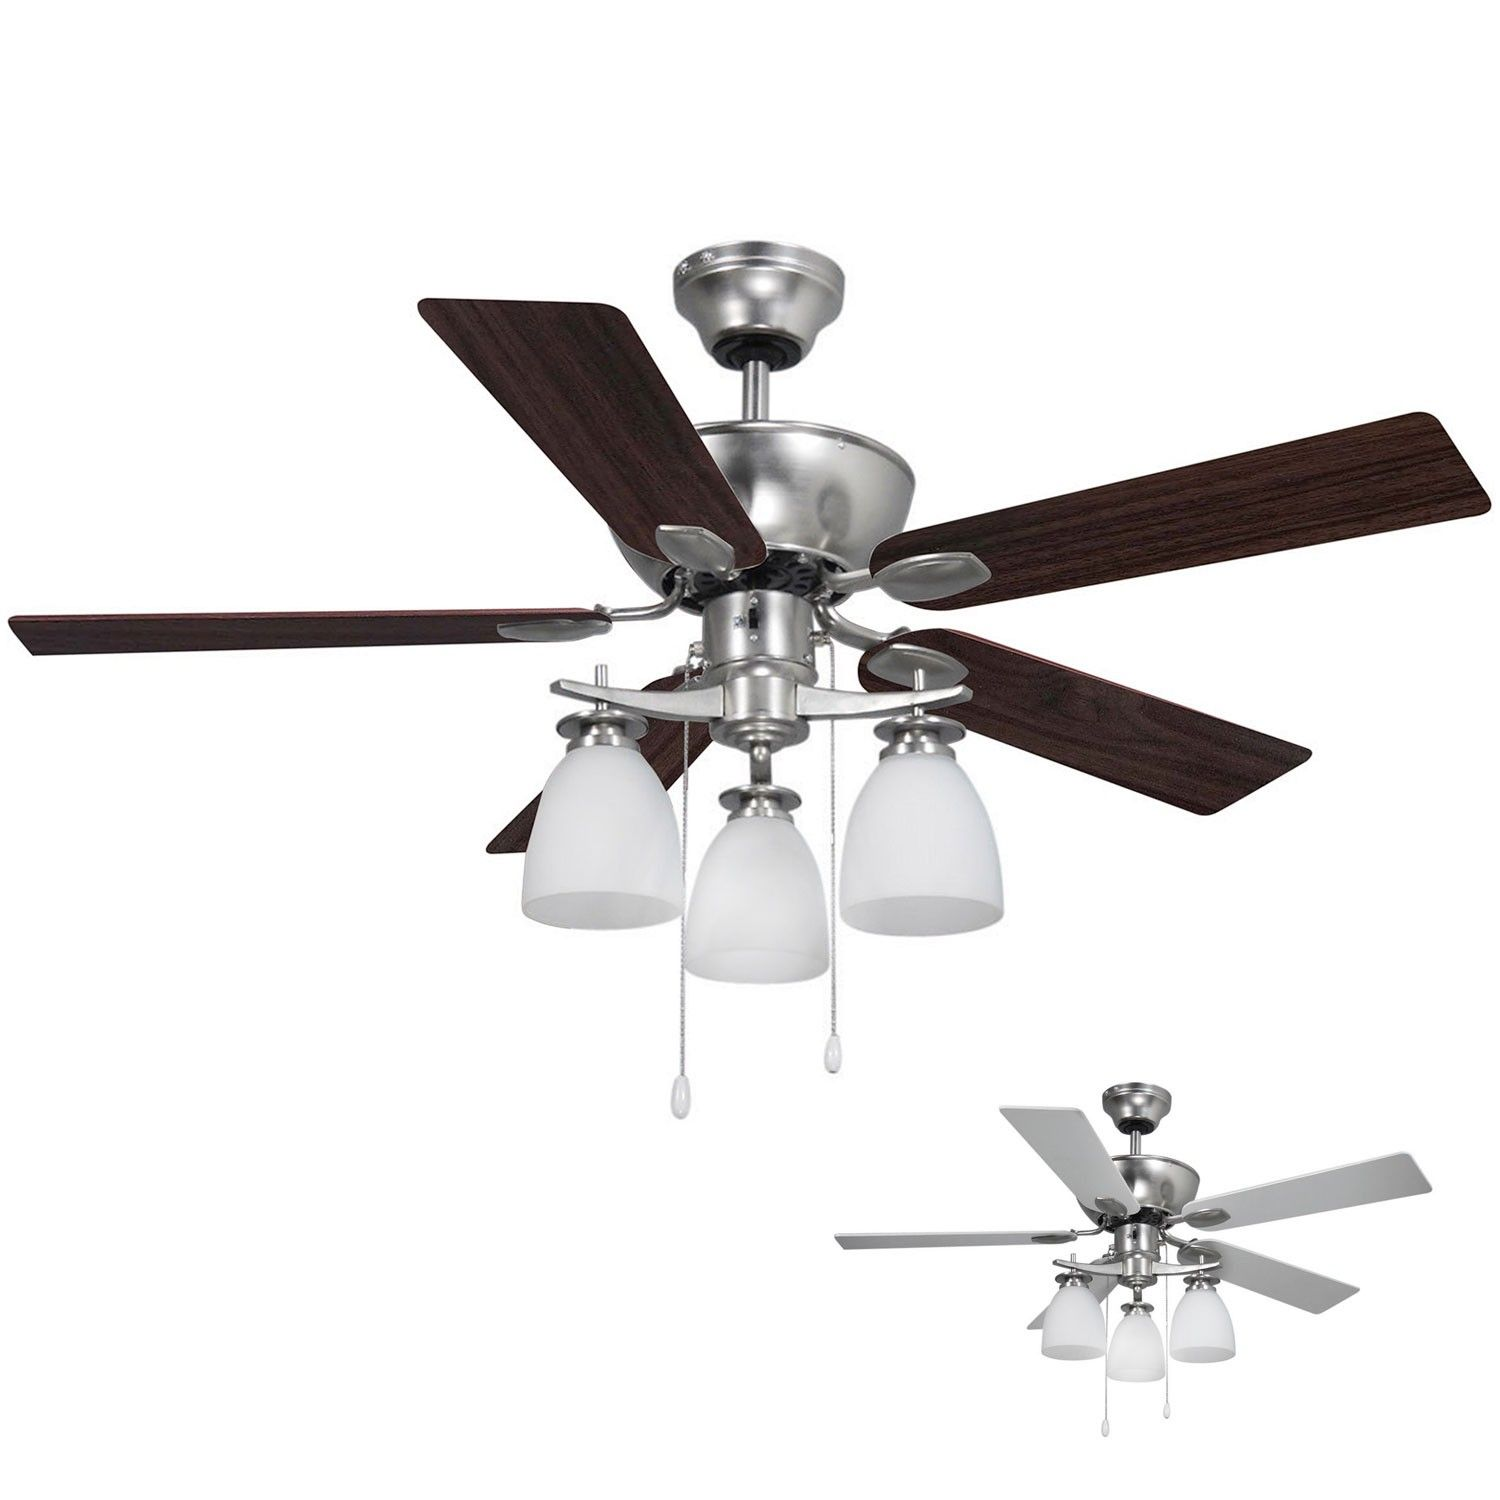 Farmhouse Rustic Reversible Ceiling Fan With Lights 3 Blade Wire Drum Semi Flush Mount Ceiling Fan With Remote In 2020 Ceiling Fan With Light Ceiling Fan With Remote Flush Mount Ceiling Fan